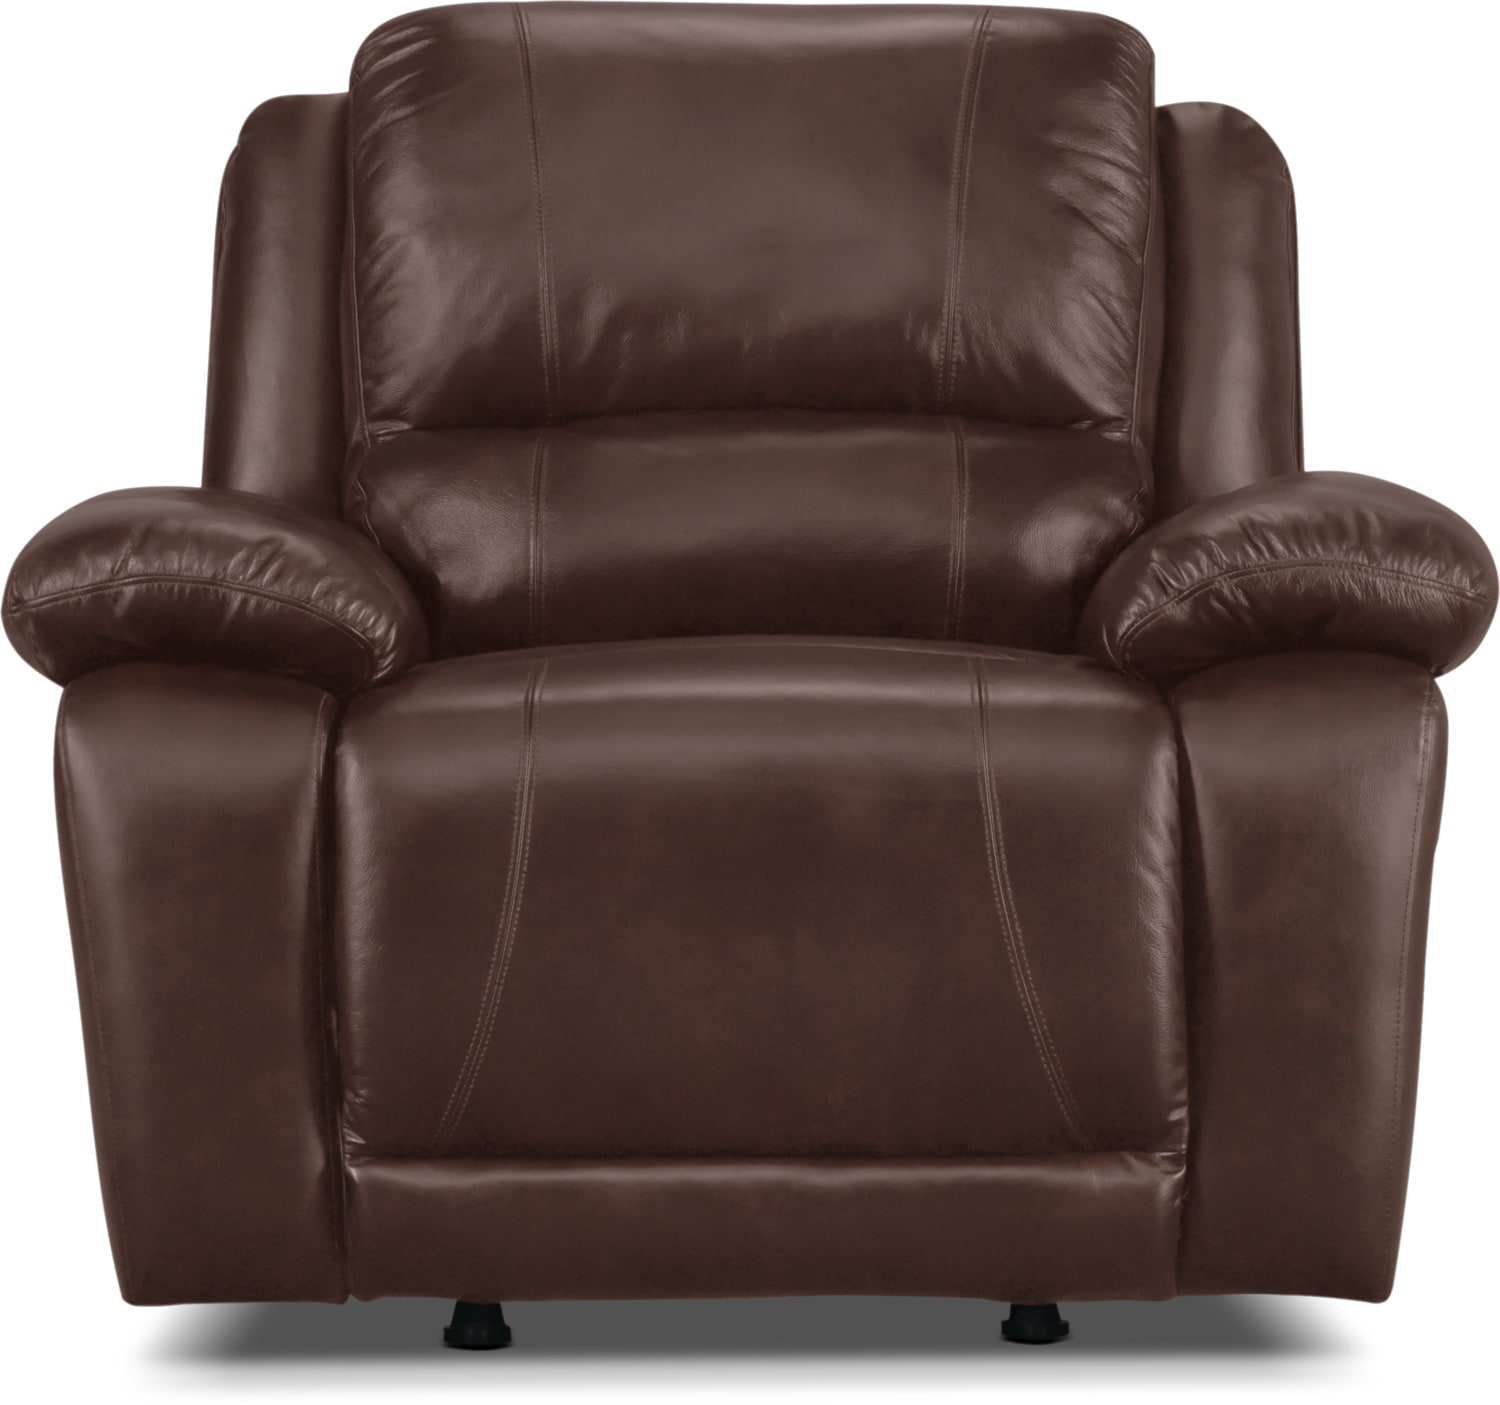 Real Leather Recliner Chairs Marco Genuine Leather Rocker Reclining Chair Chocolate